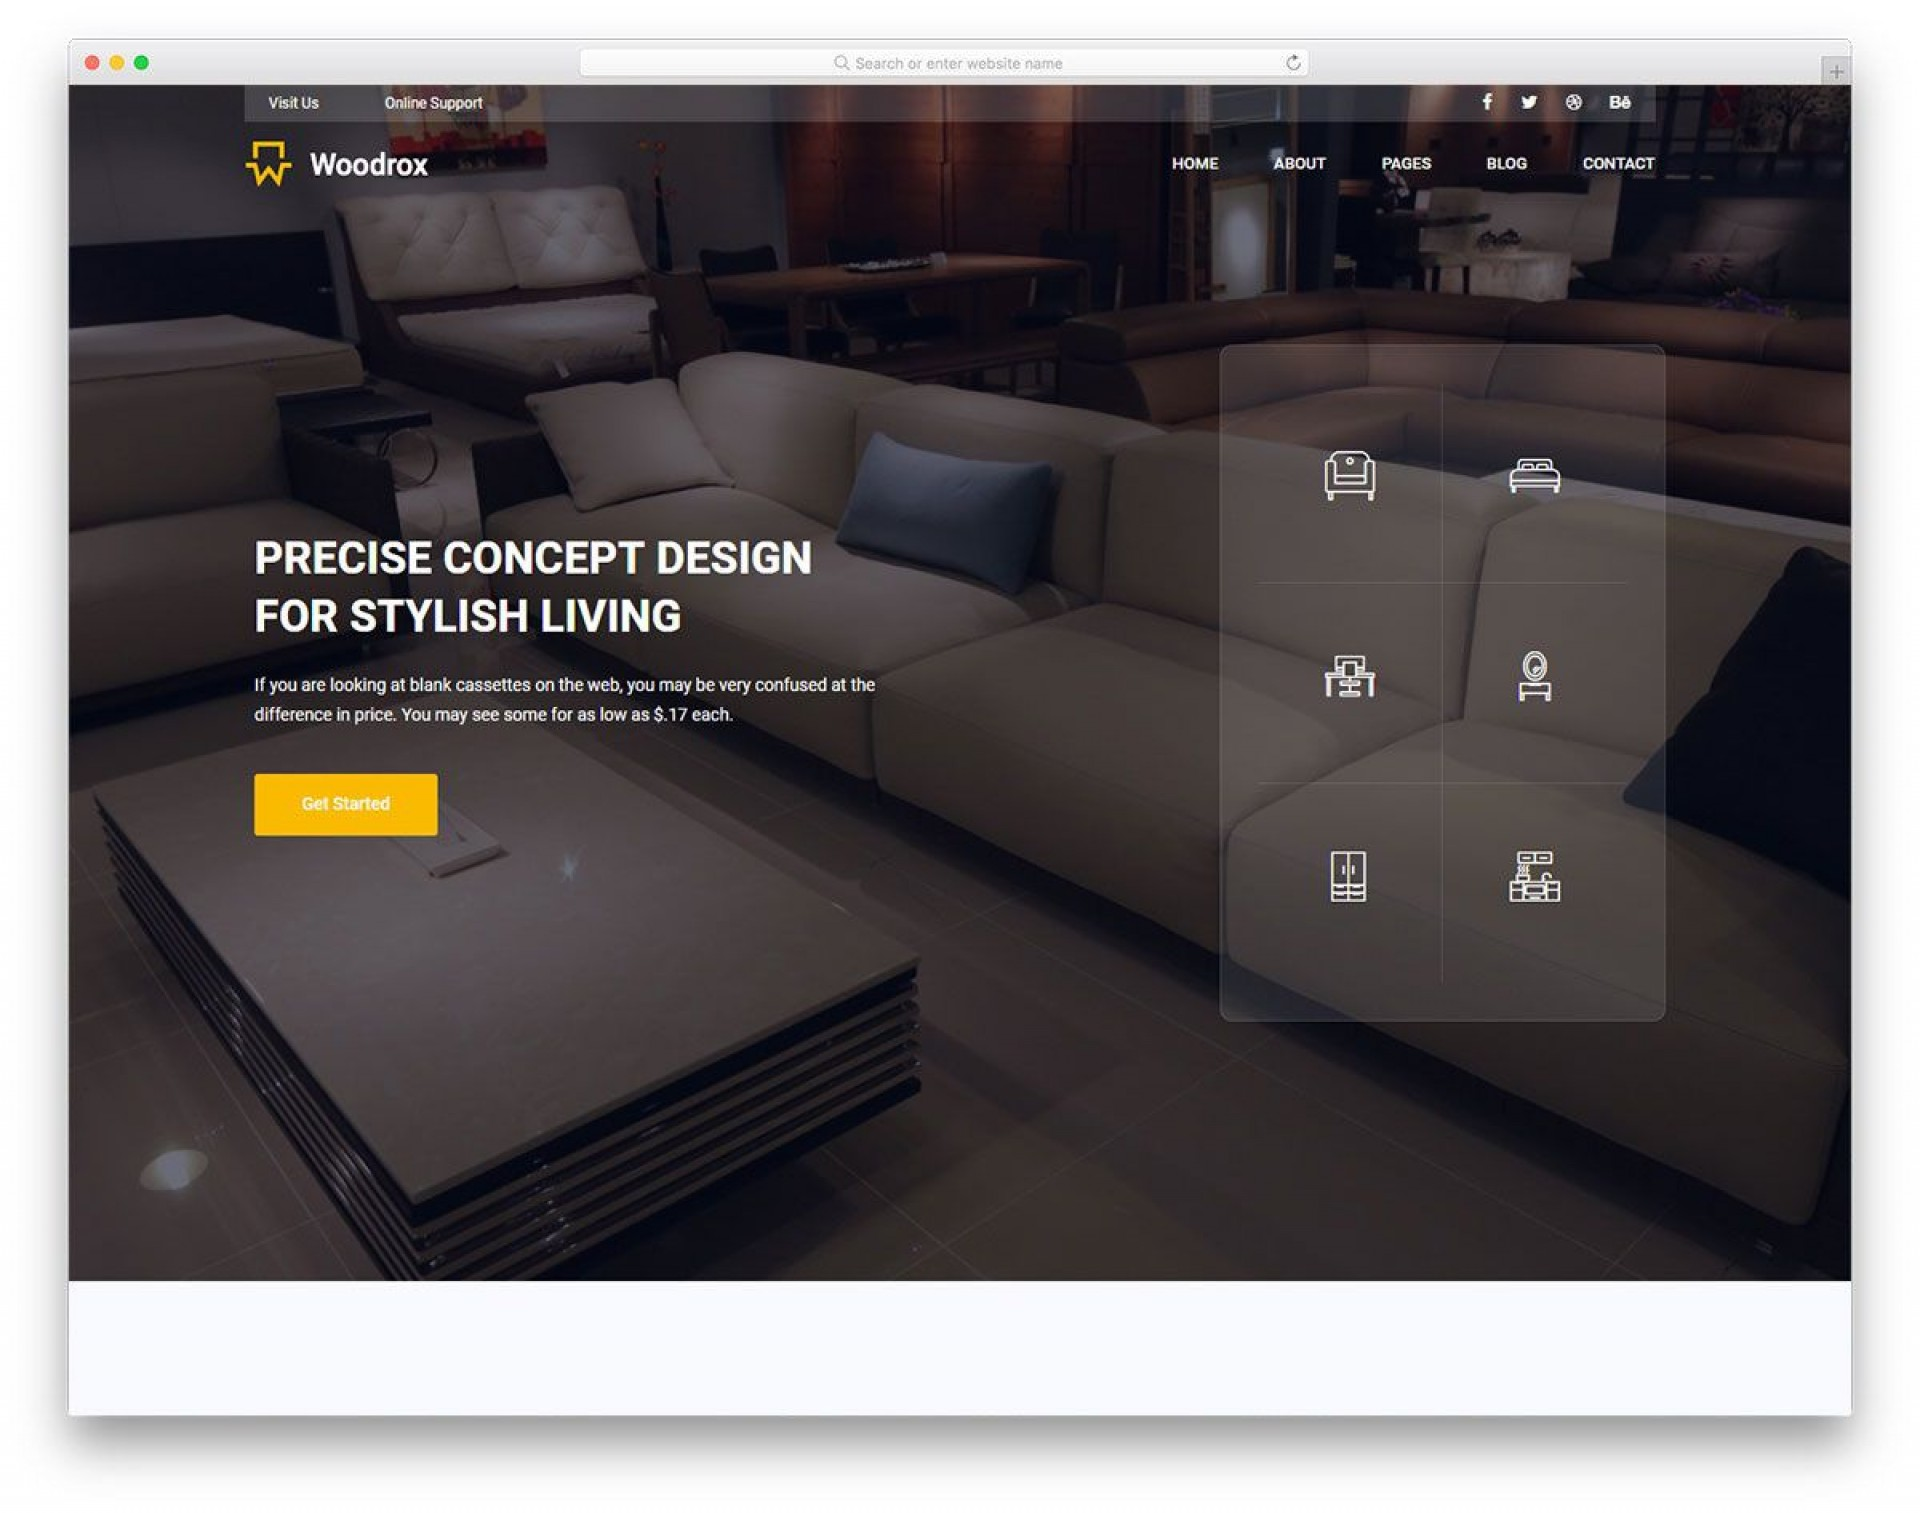 009 Exceptional Interior Design Html Template Free Download Highest Clarity 1920